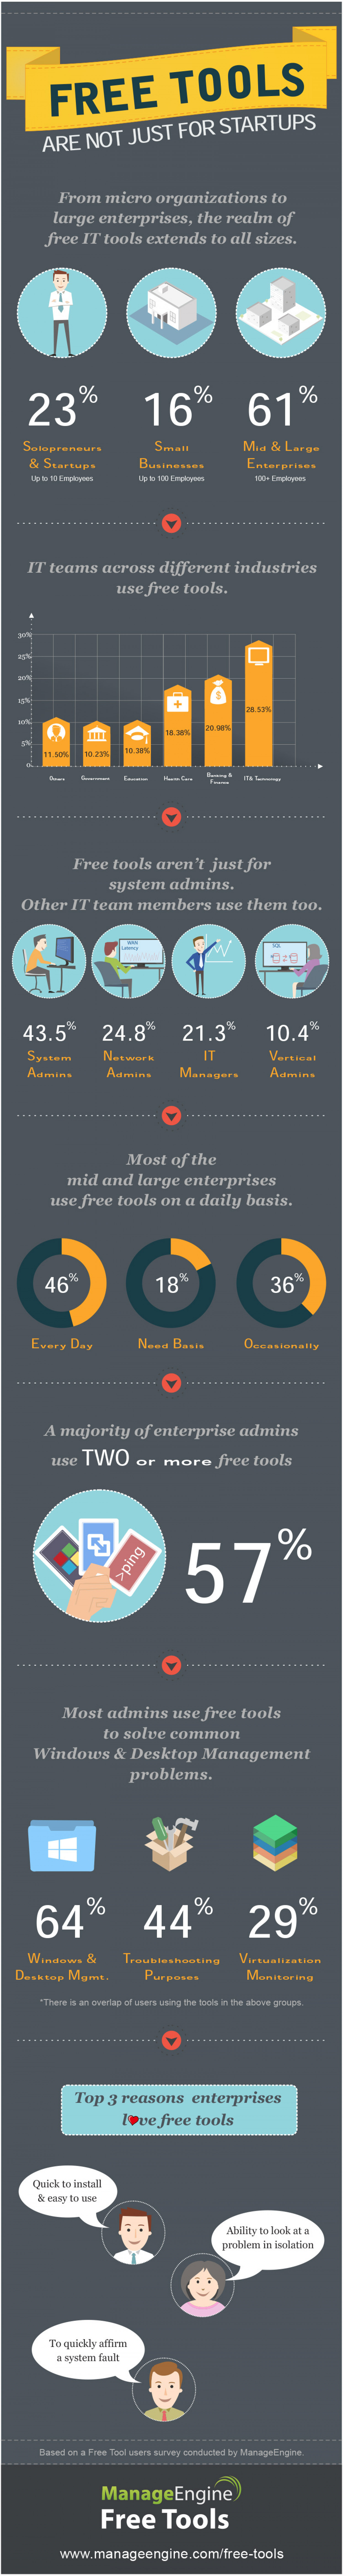 Free IT Tools aren't just for Solopreneurs & Startups Infographic